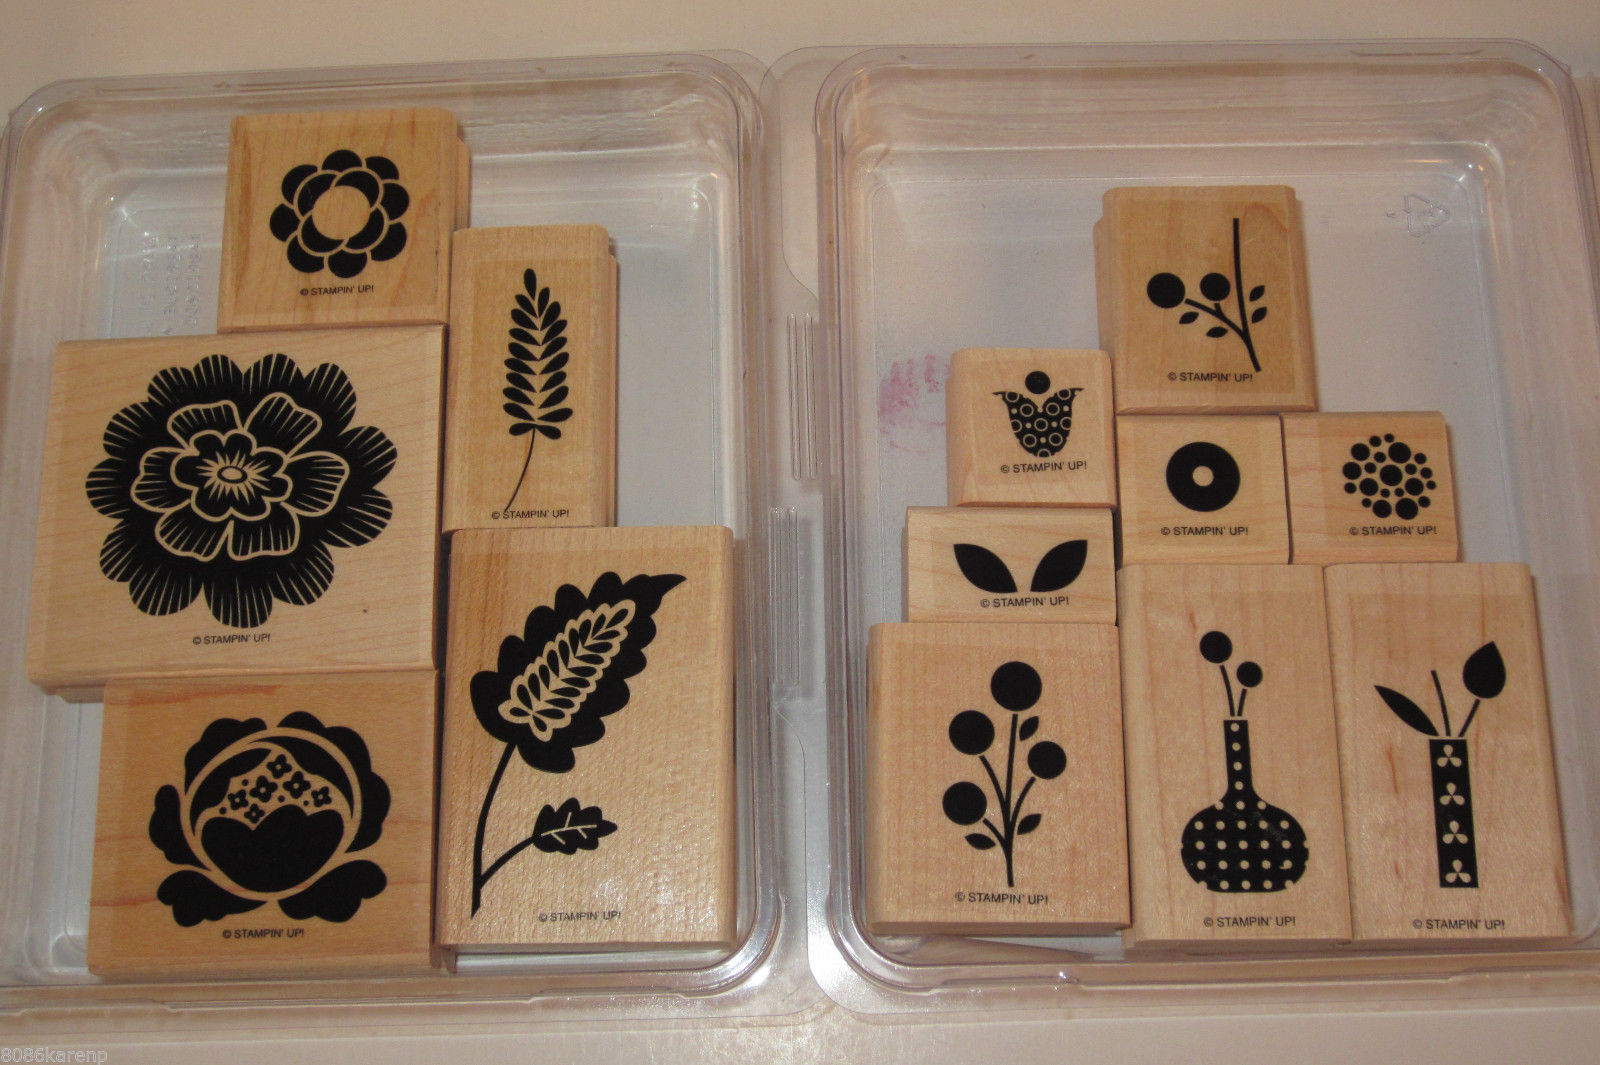 Primary image for Stampin Up ARRAY OF SUNSHINE and BRIGHT BLOSSOMS Wood Stamp Sets Retired flower